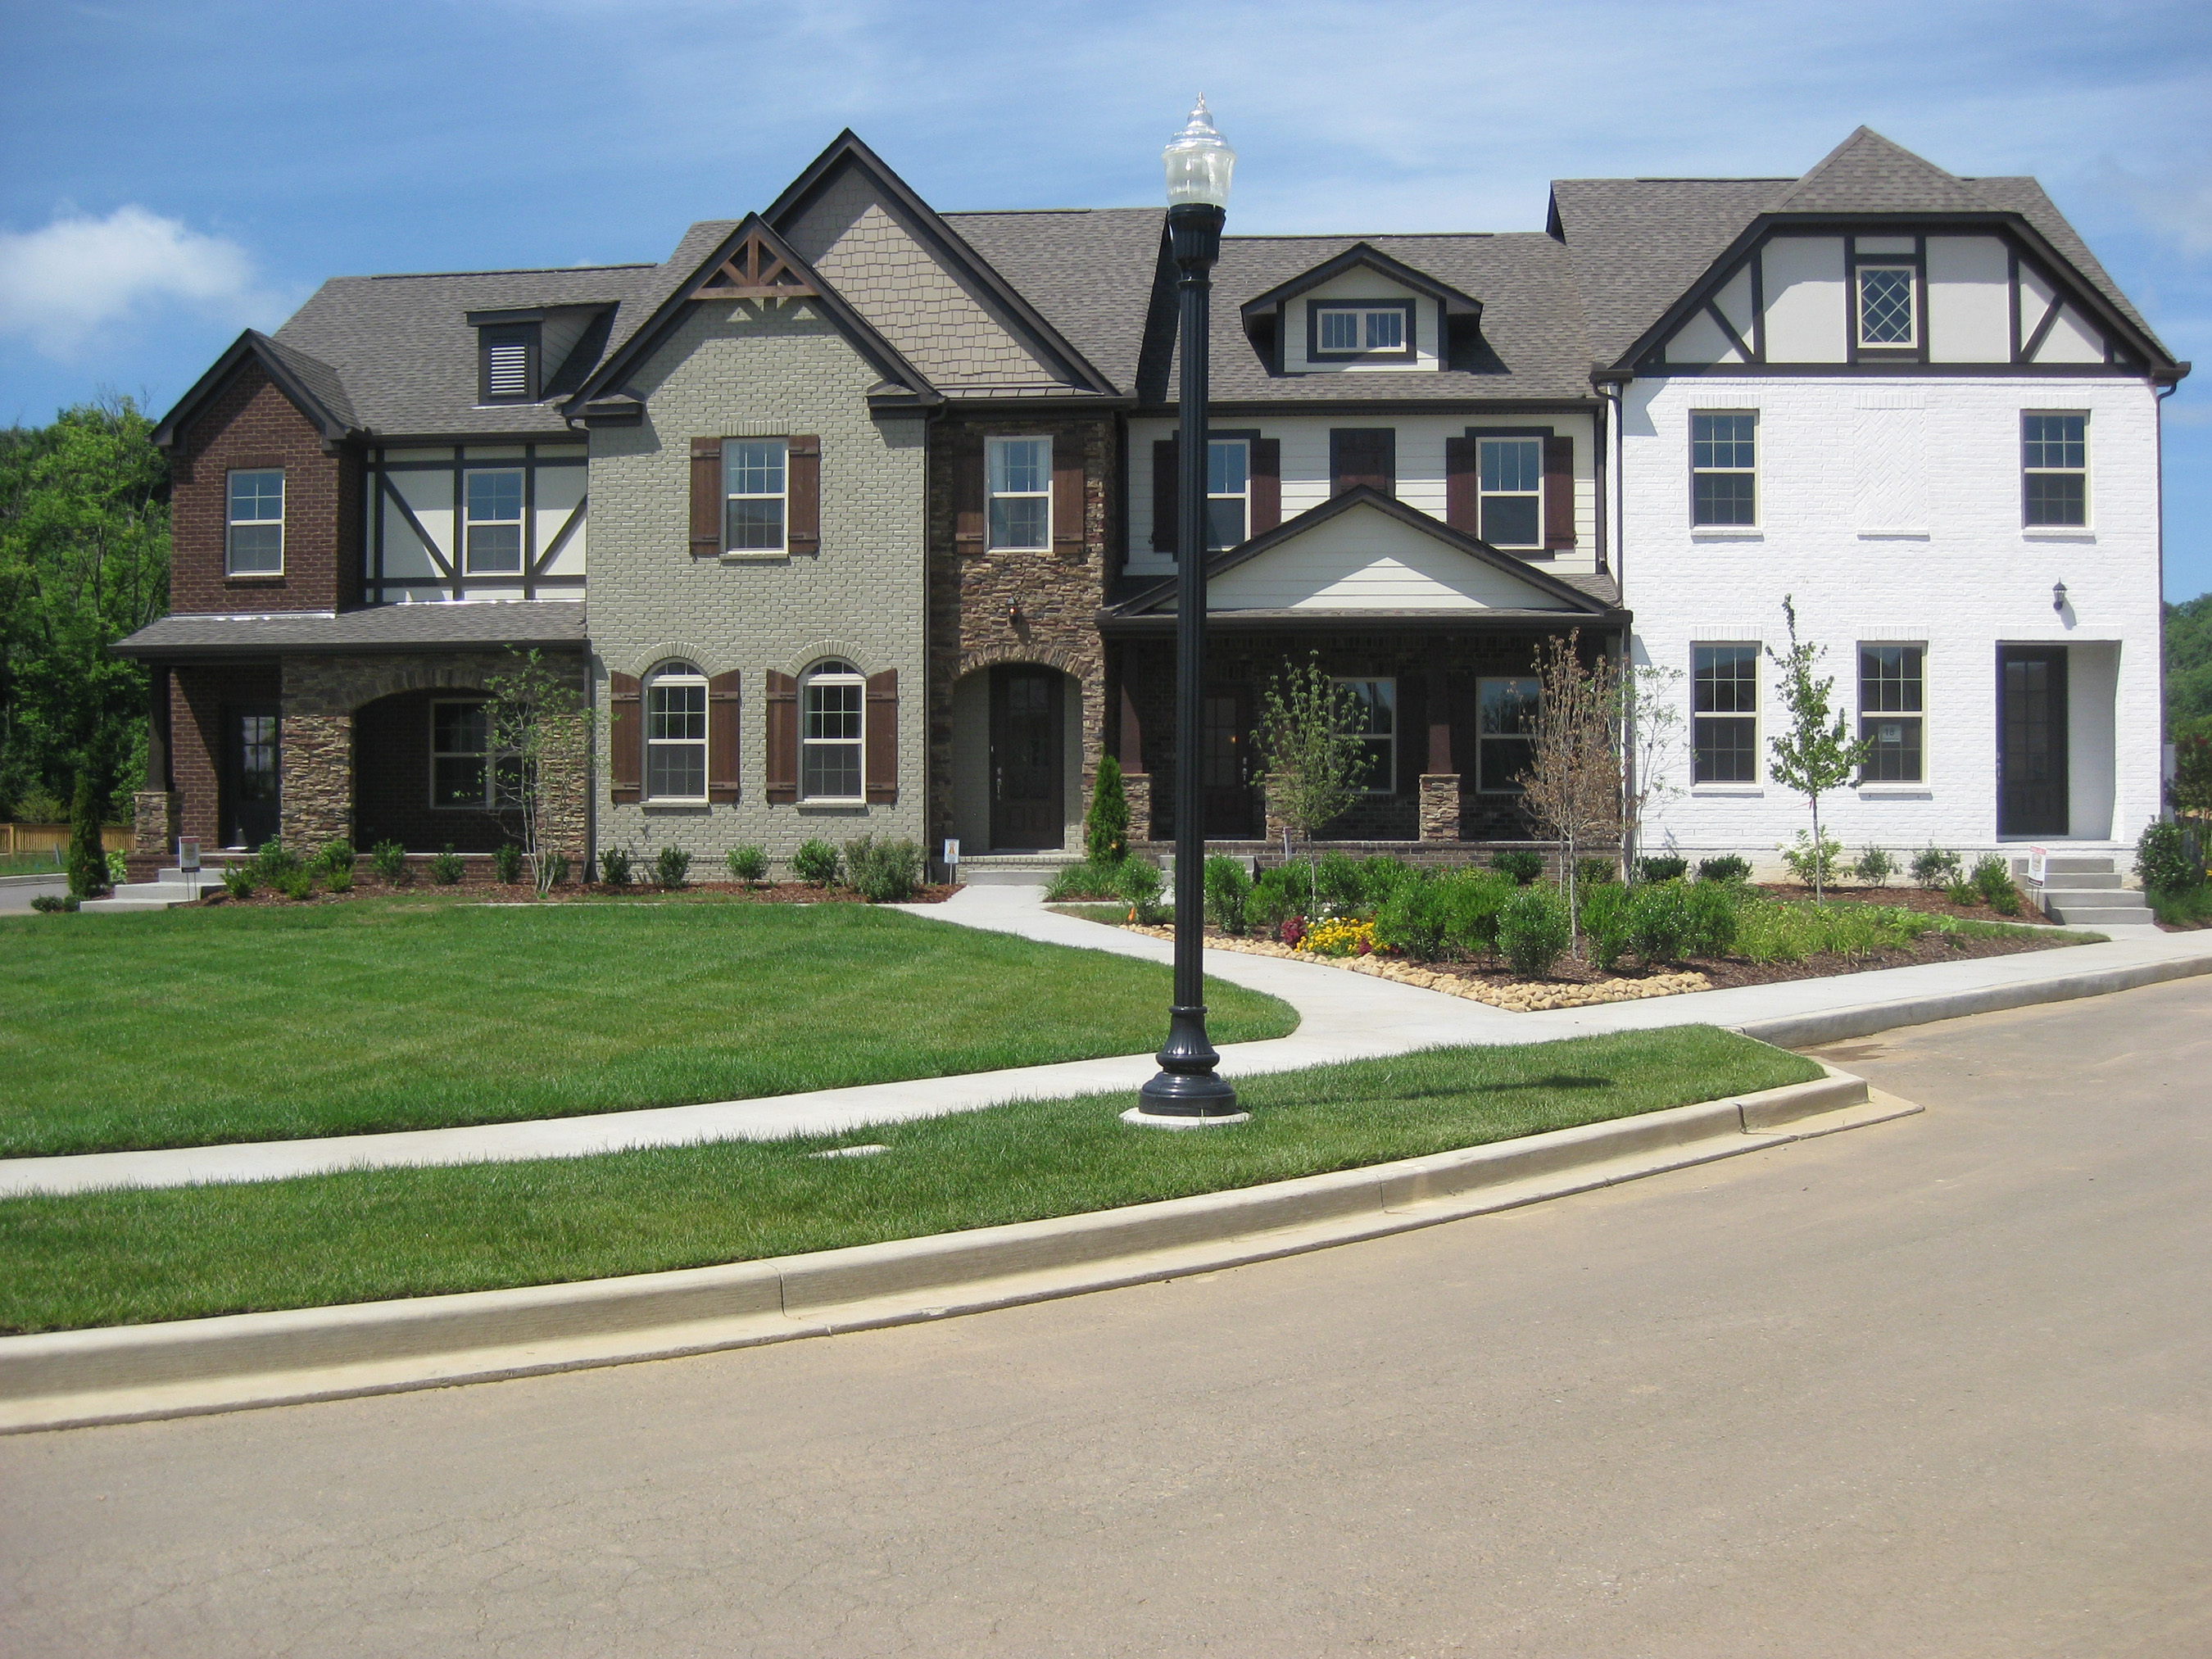 Through the Goodall Homes acquisition, Clayton will be building town homes like these pictured here.